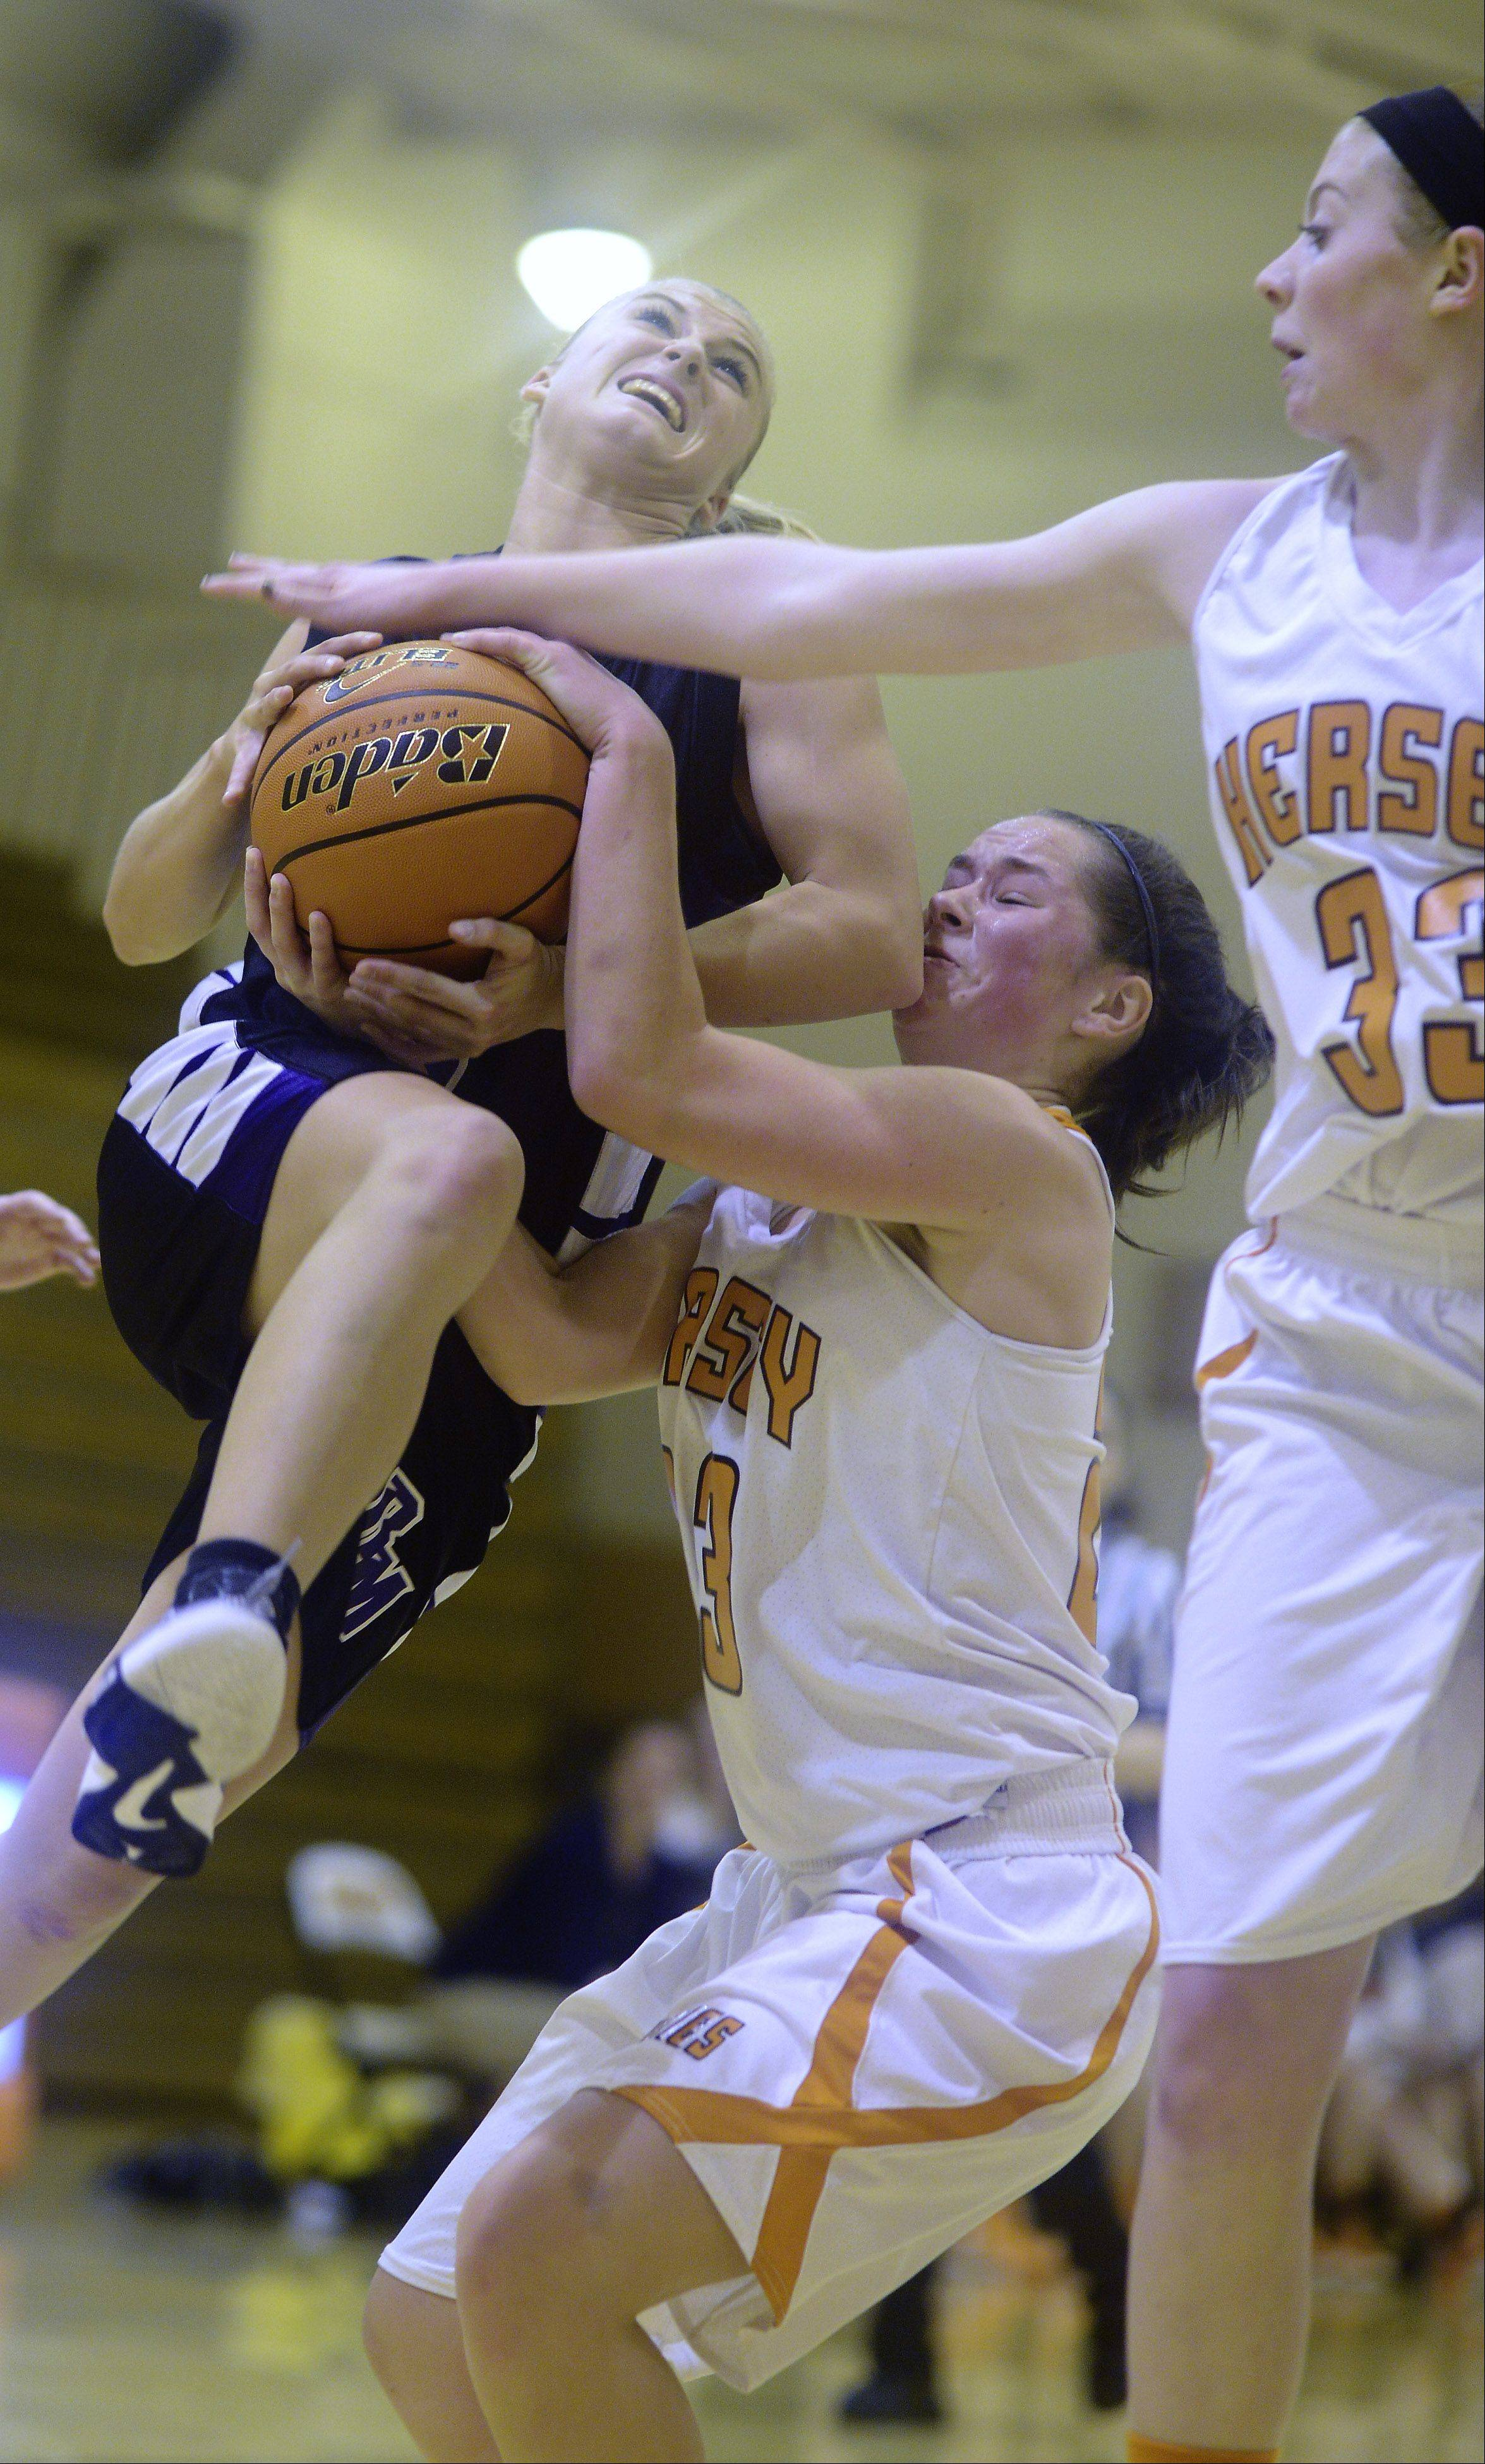 Rolling Meadows' Jackie Kemph, left, gets fouled as she makes a strong move to the basket against Hersey defenders Casey Weyrich, middle, and Ashley Raulli.